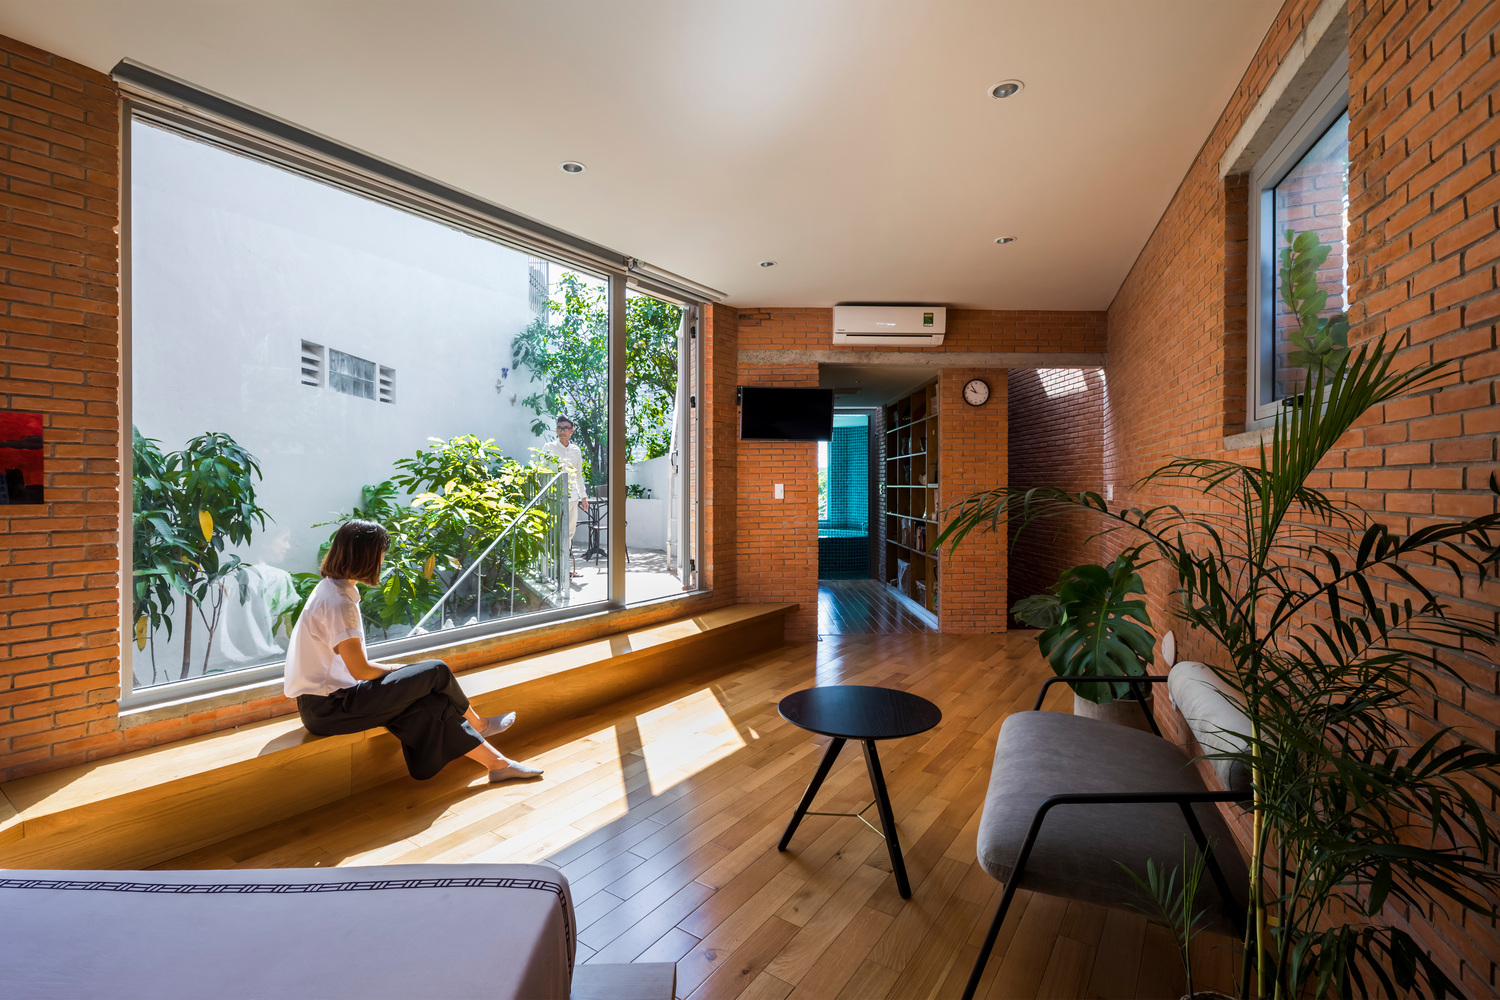 Ha-house-resort-thu-nho-giua-long-sai-gon-8